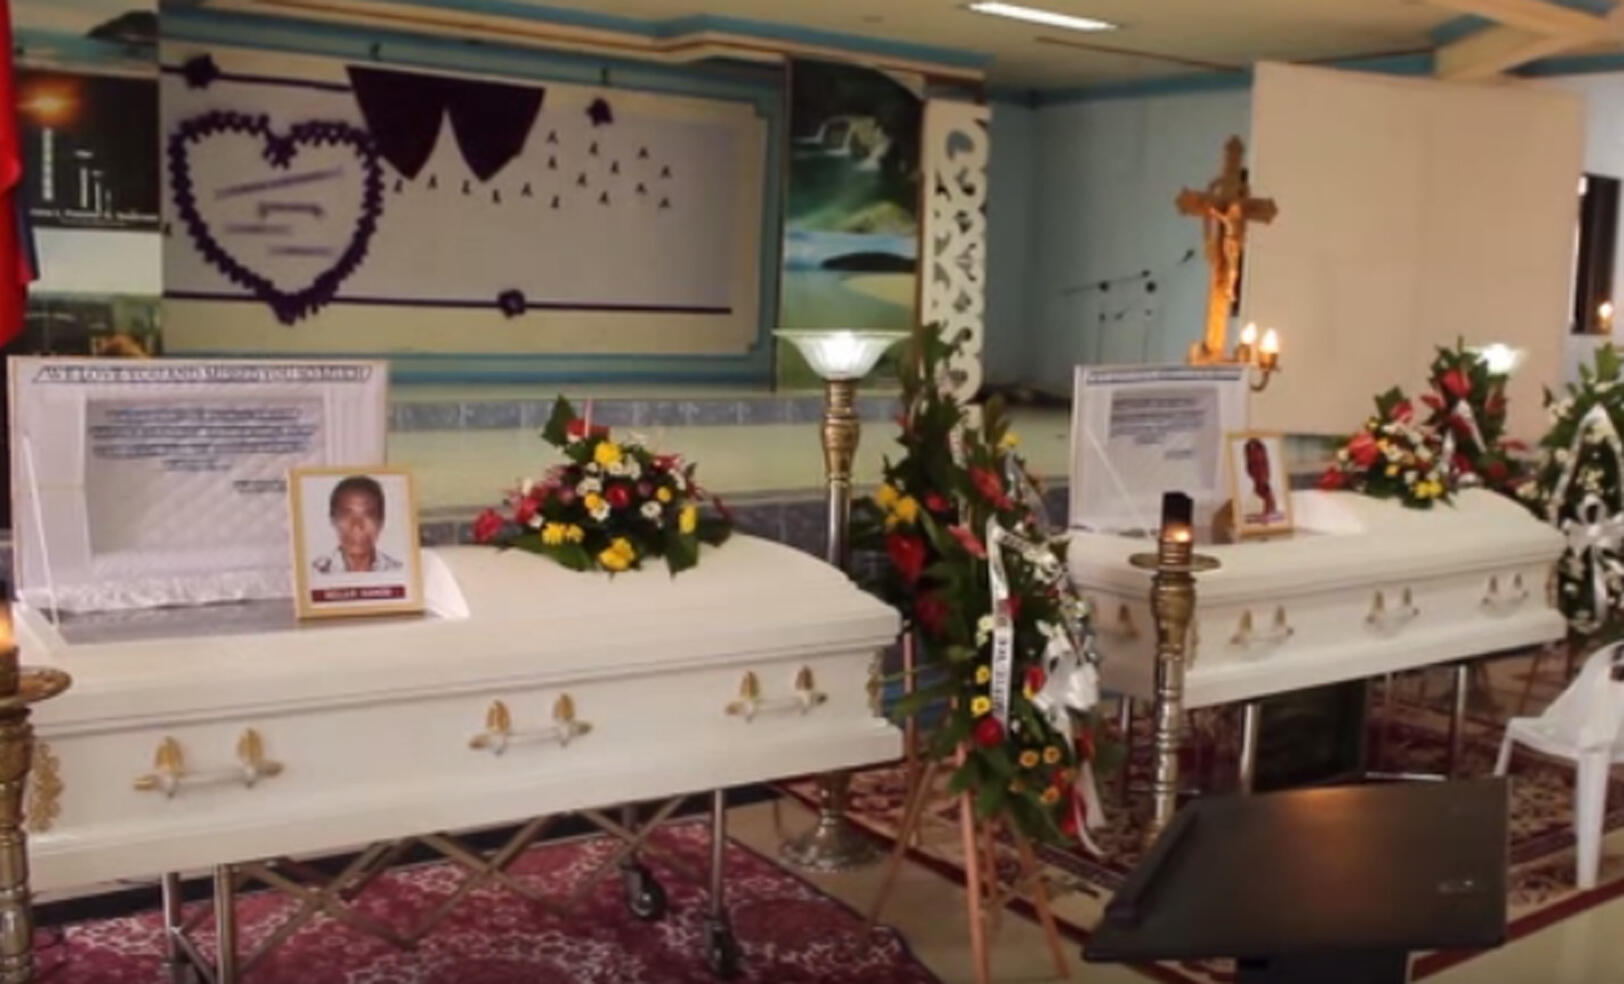 The caskets of the activists killed in Lianga.